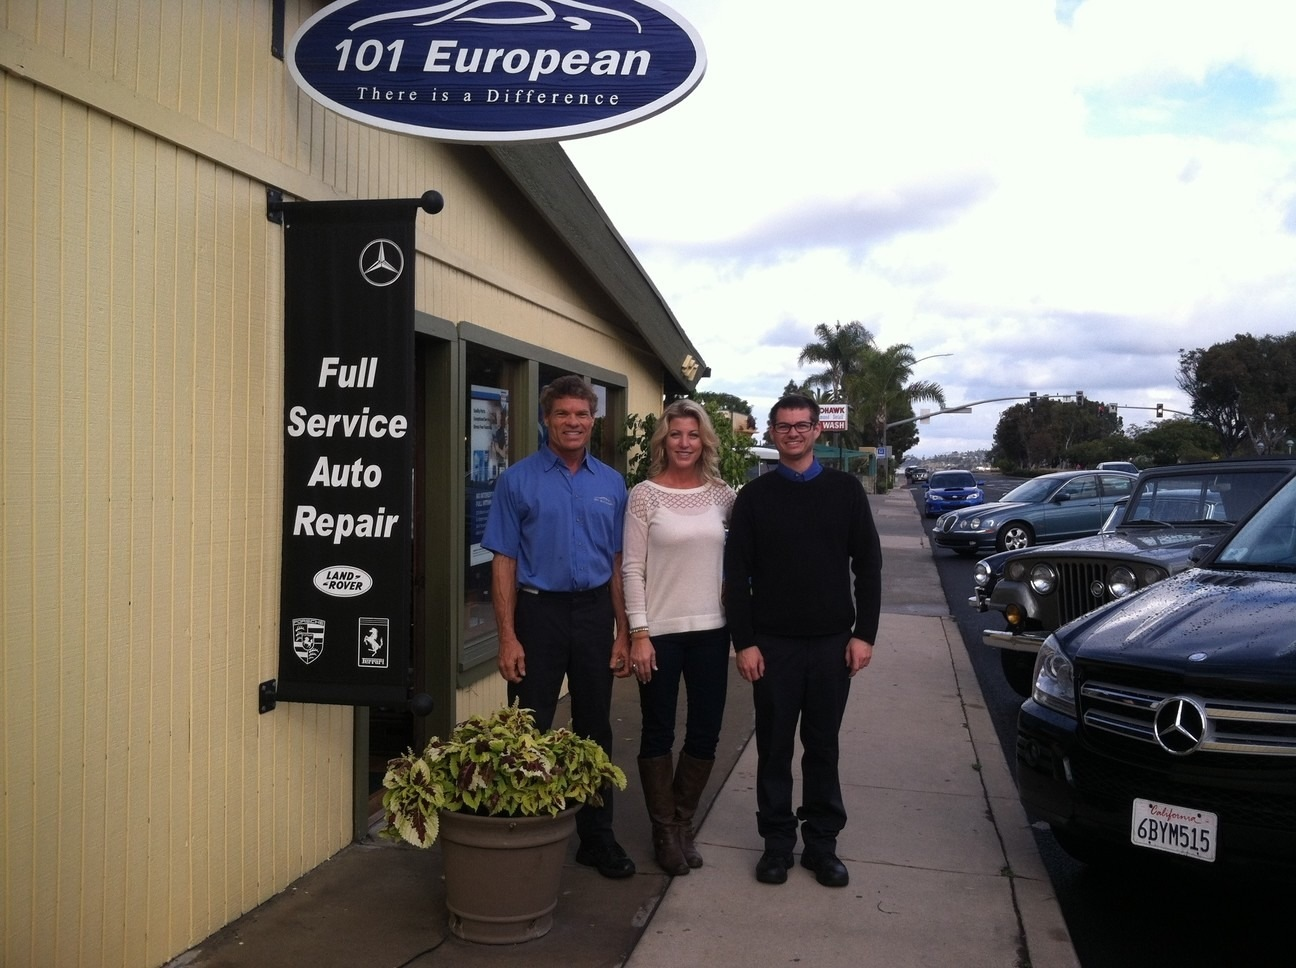 101 European Automotive Carlsbad and Encinitas, Carlsbad CA and Encinitas CA, 92008 and 92024, Auto Repair, Audi Repair, BMW Repair, Mercedes Repair and Porsche Repair